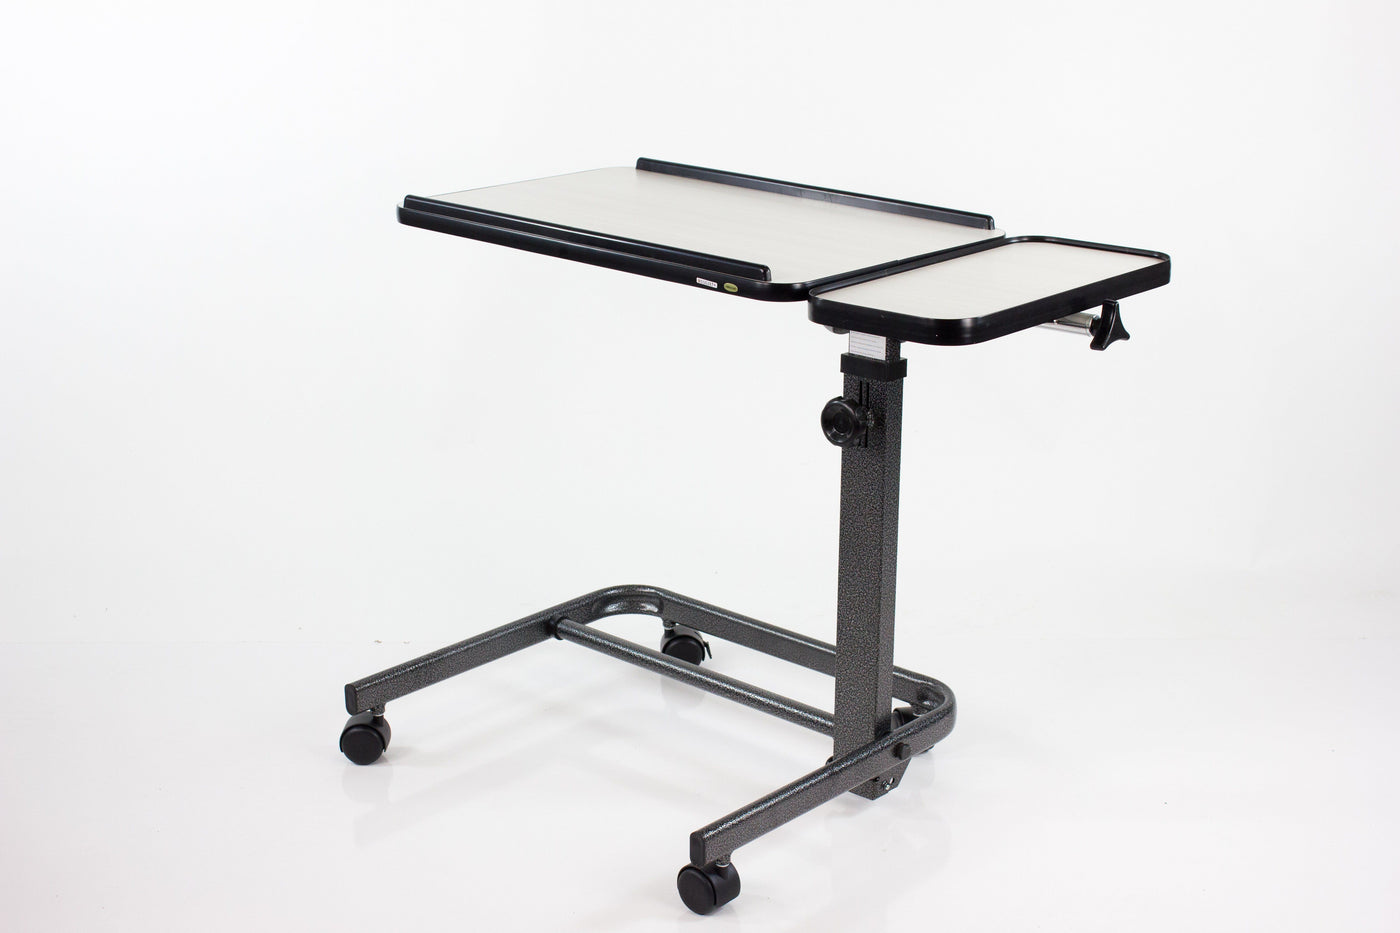 Acrobat Adjustable Overbed (or) Laptop Table